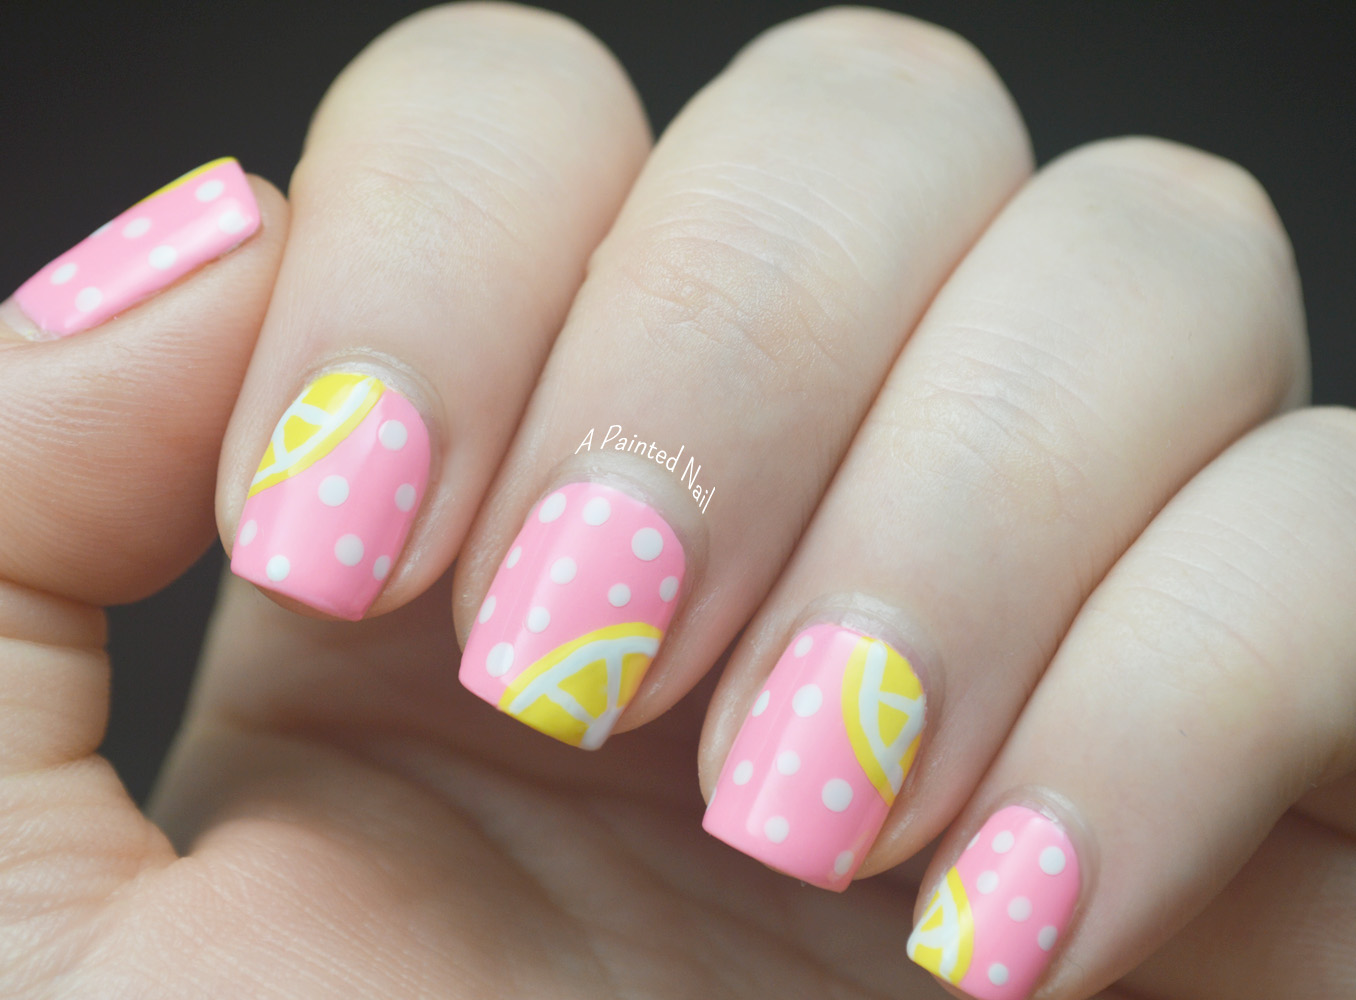 The Inspiration For My Pink Lemonade Nails Came From Pam S Y Bits That I Found On Pinterest All Today But Be Sure To Check Out Rest Of